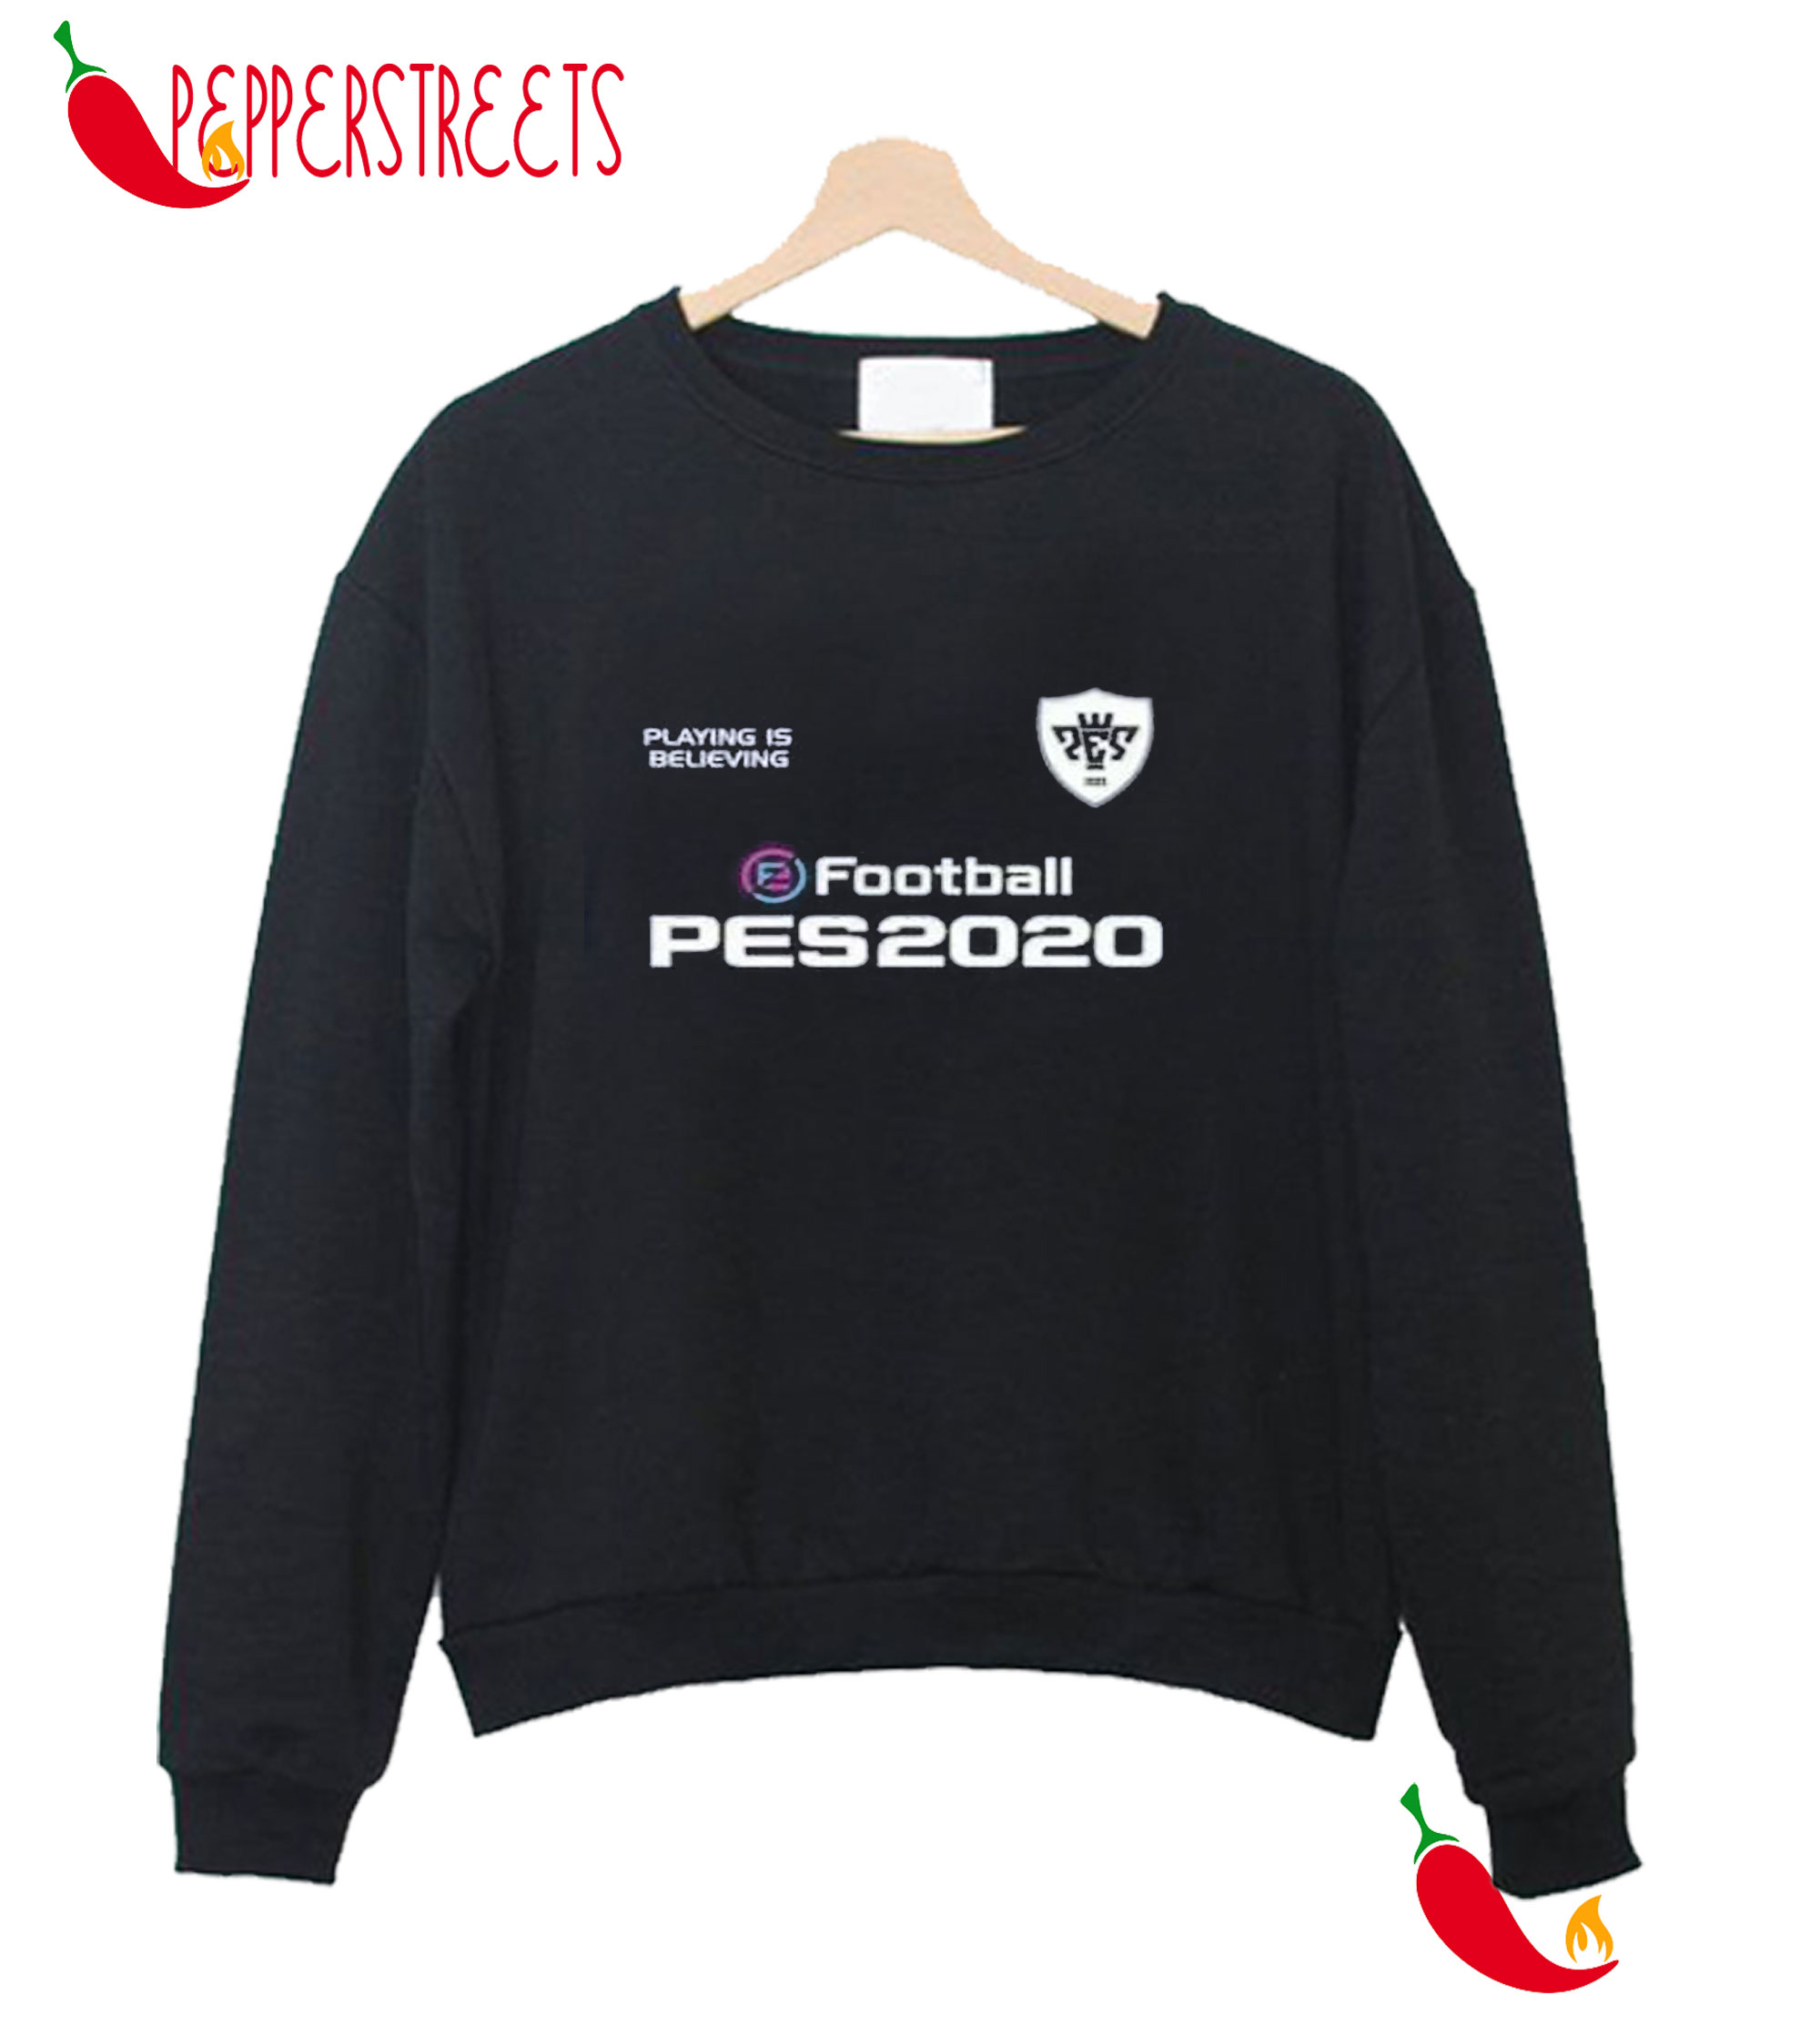 Playing Is Believing E Football Pes2020 Sweatshirt